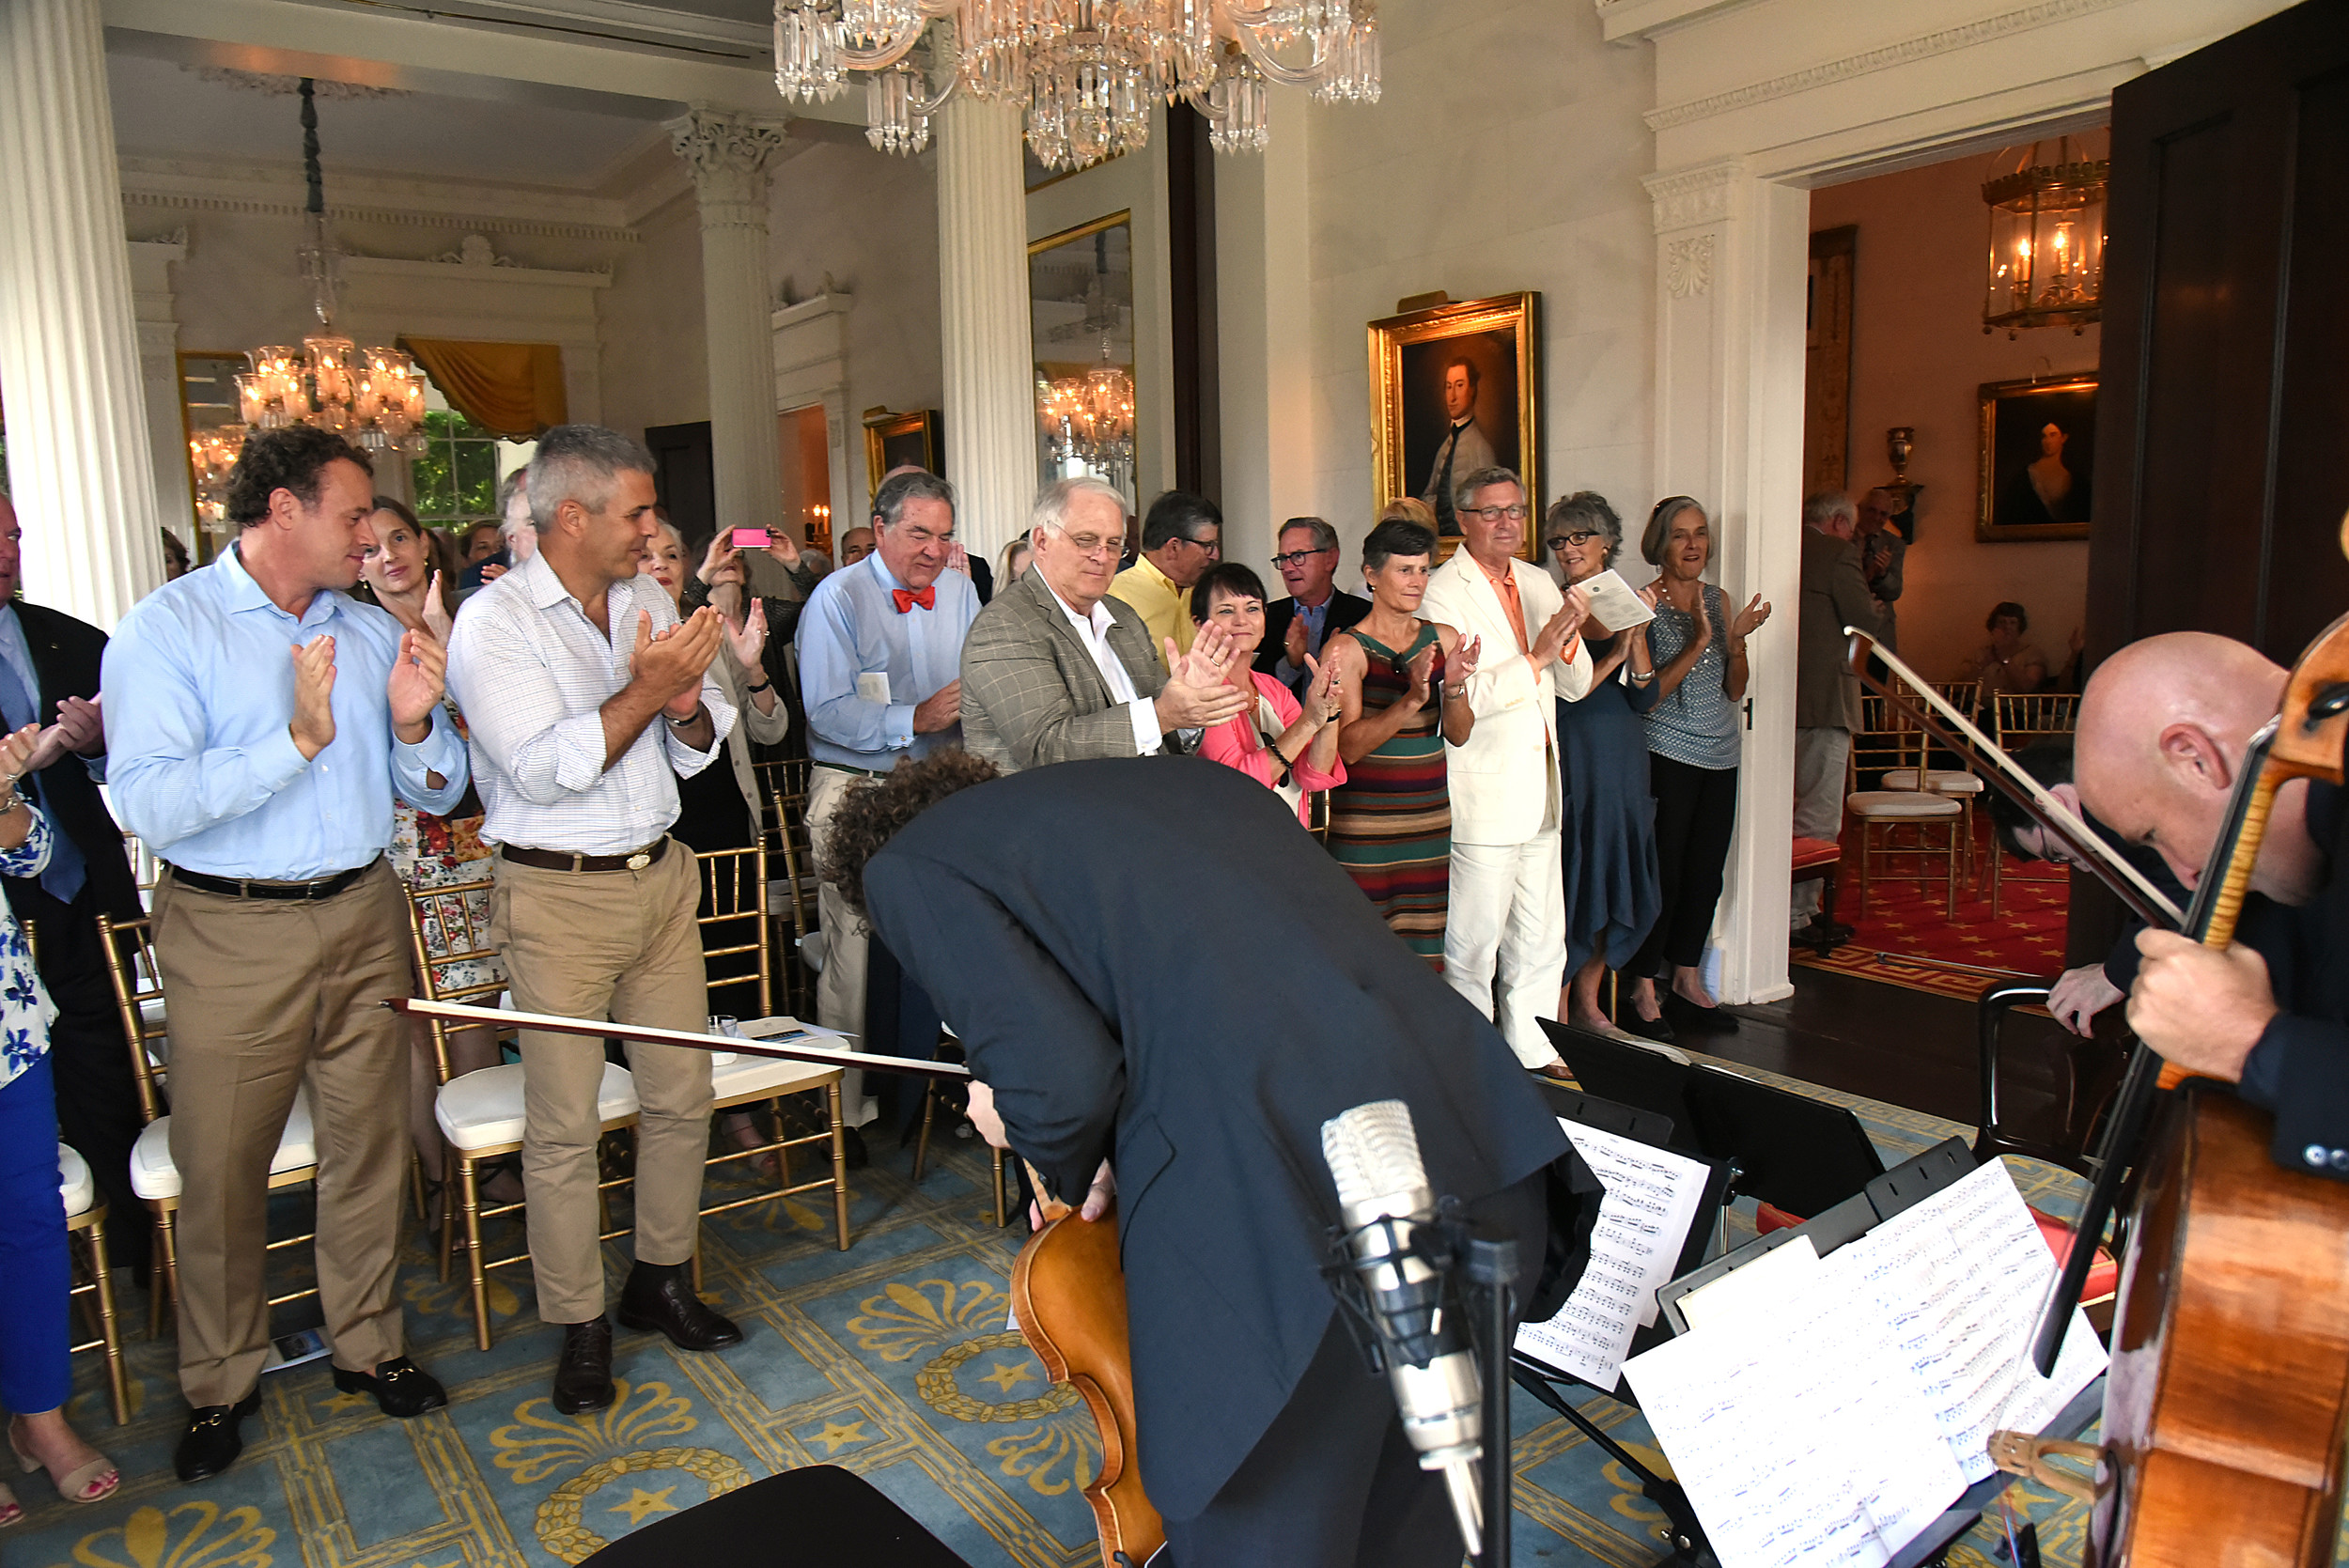 Viola performer Ben Ullery, bottom left, and cellist Robert deMaine take a bow to a standing ovation at the end of the Music at Millford concert Sunday. More than 125 guests attended the concert at Millford Plantation.